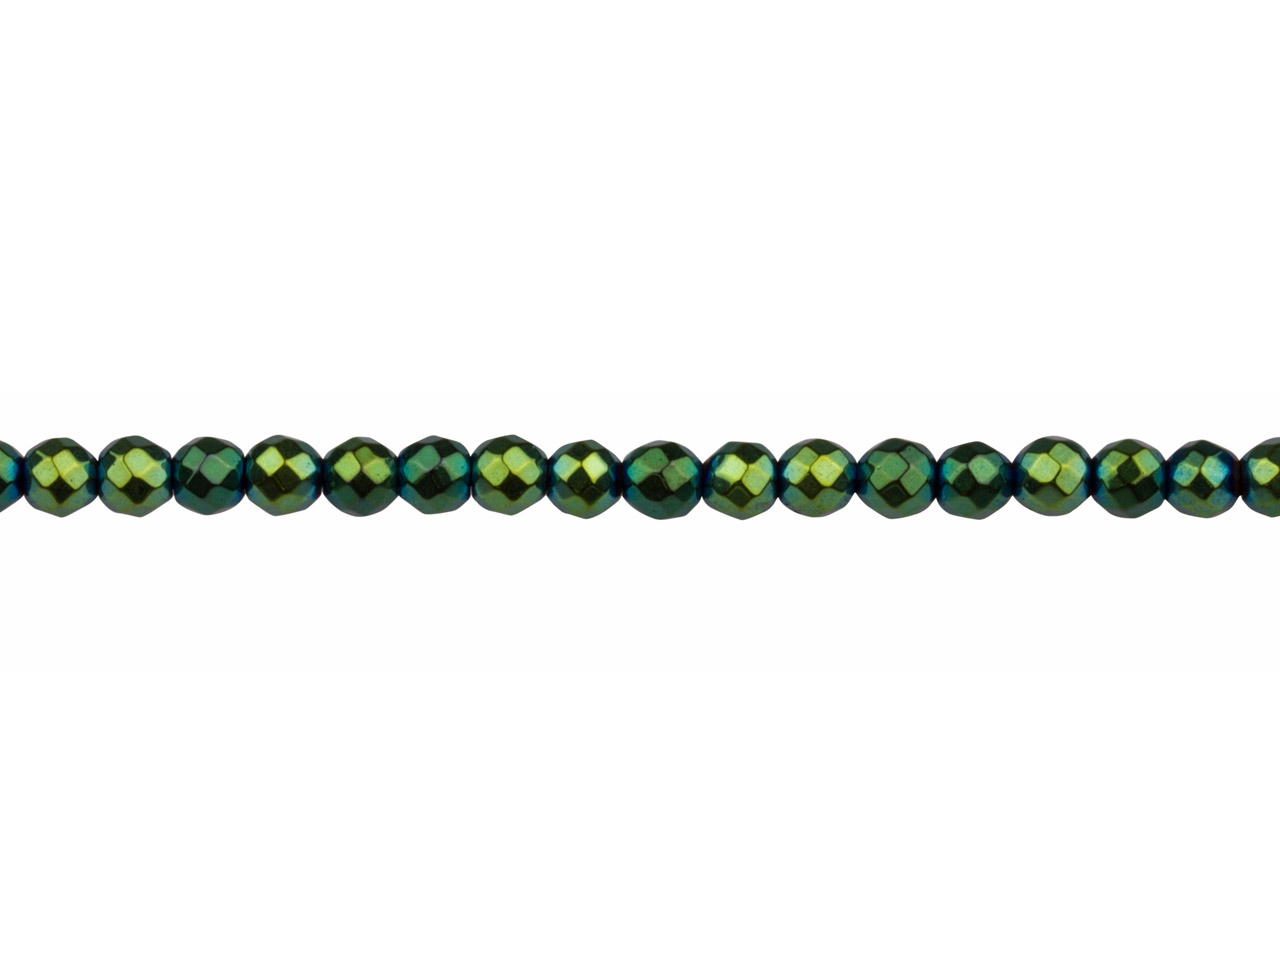 Electroplated Hematite Semi        Precious Faceted Round Beads,      Green, 4mm, 16